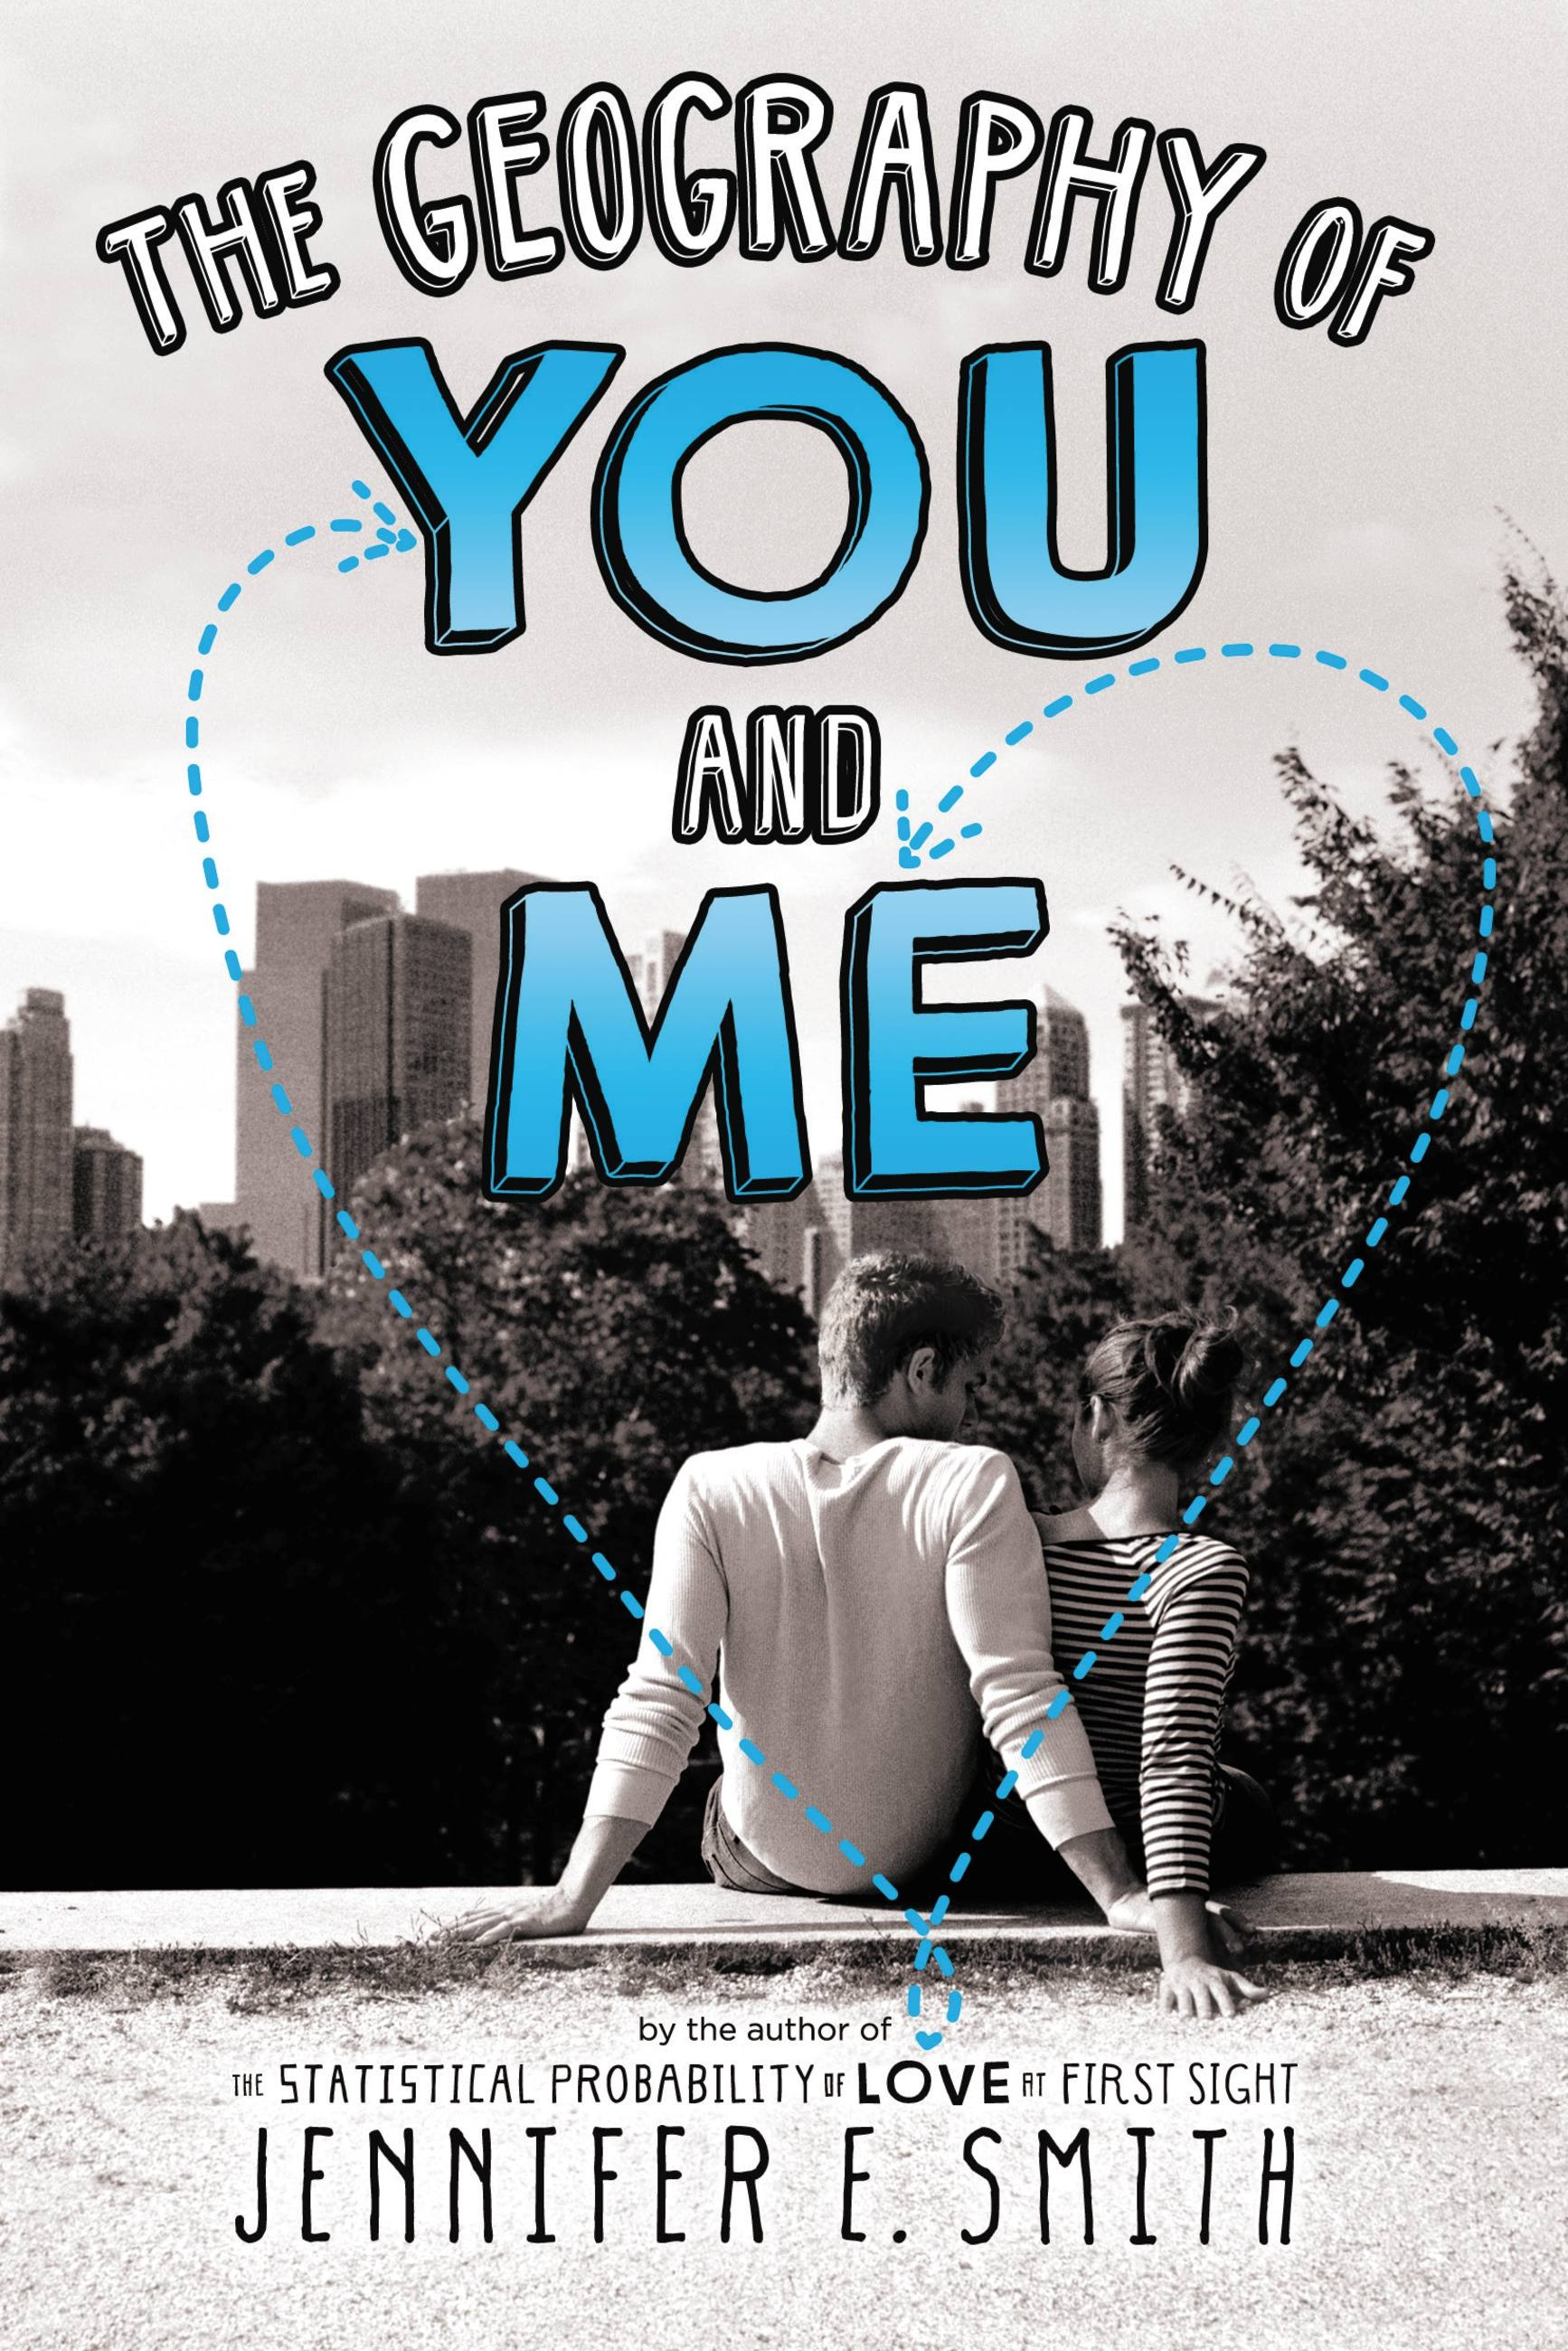 The Geography of You and Me by Jennifer E. Smith | Hachette Book Group